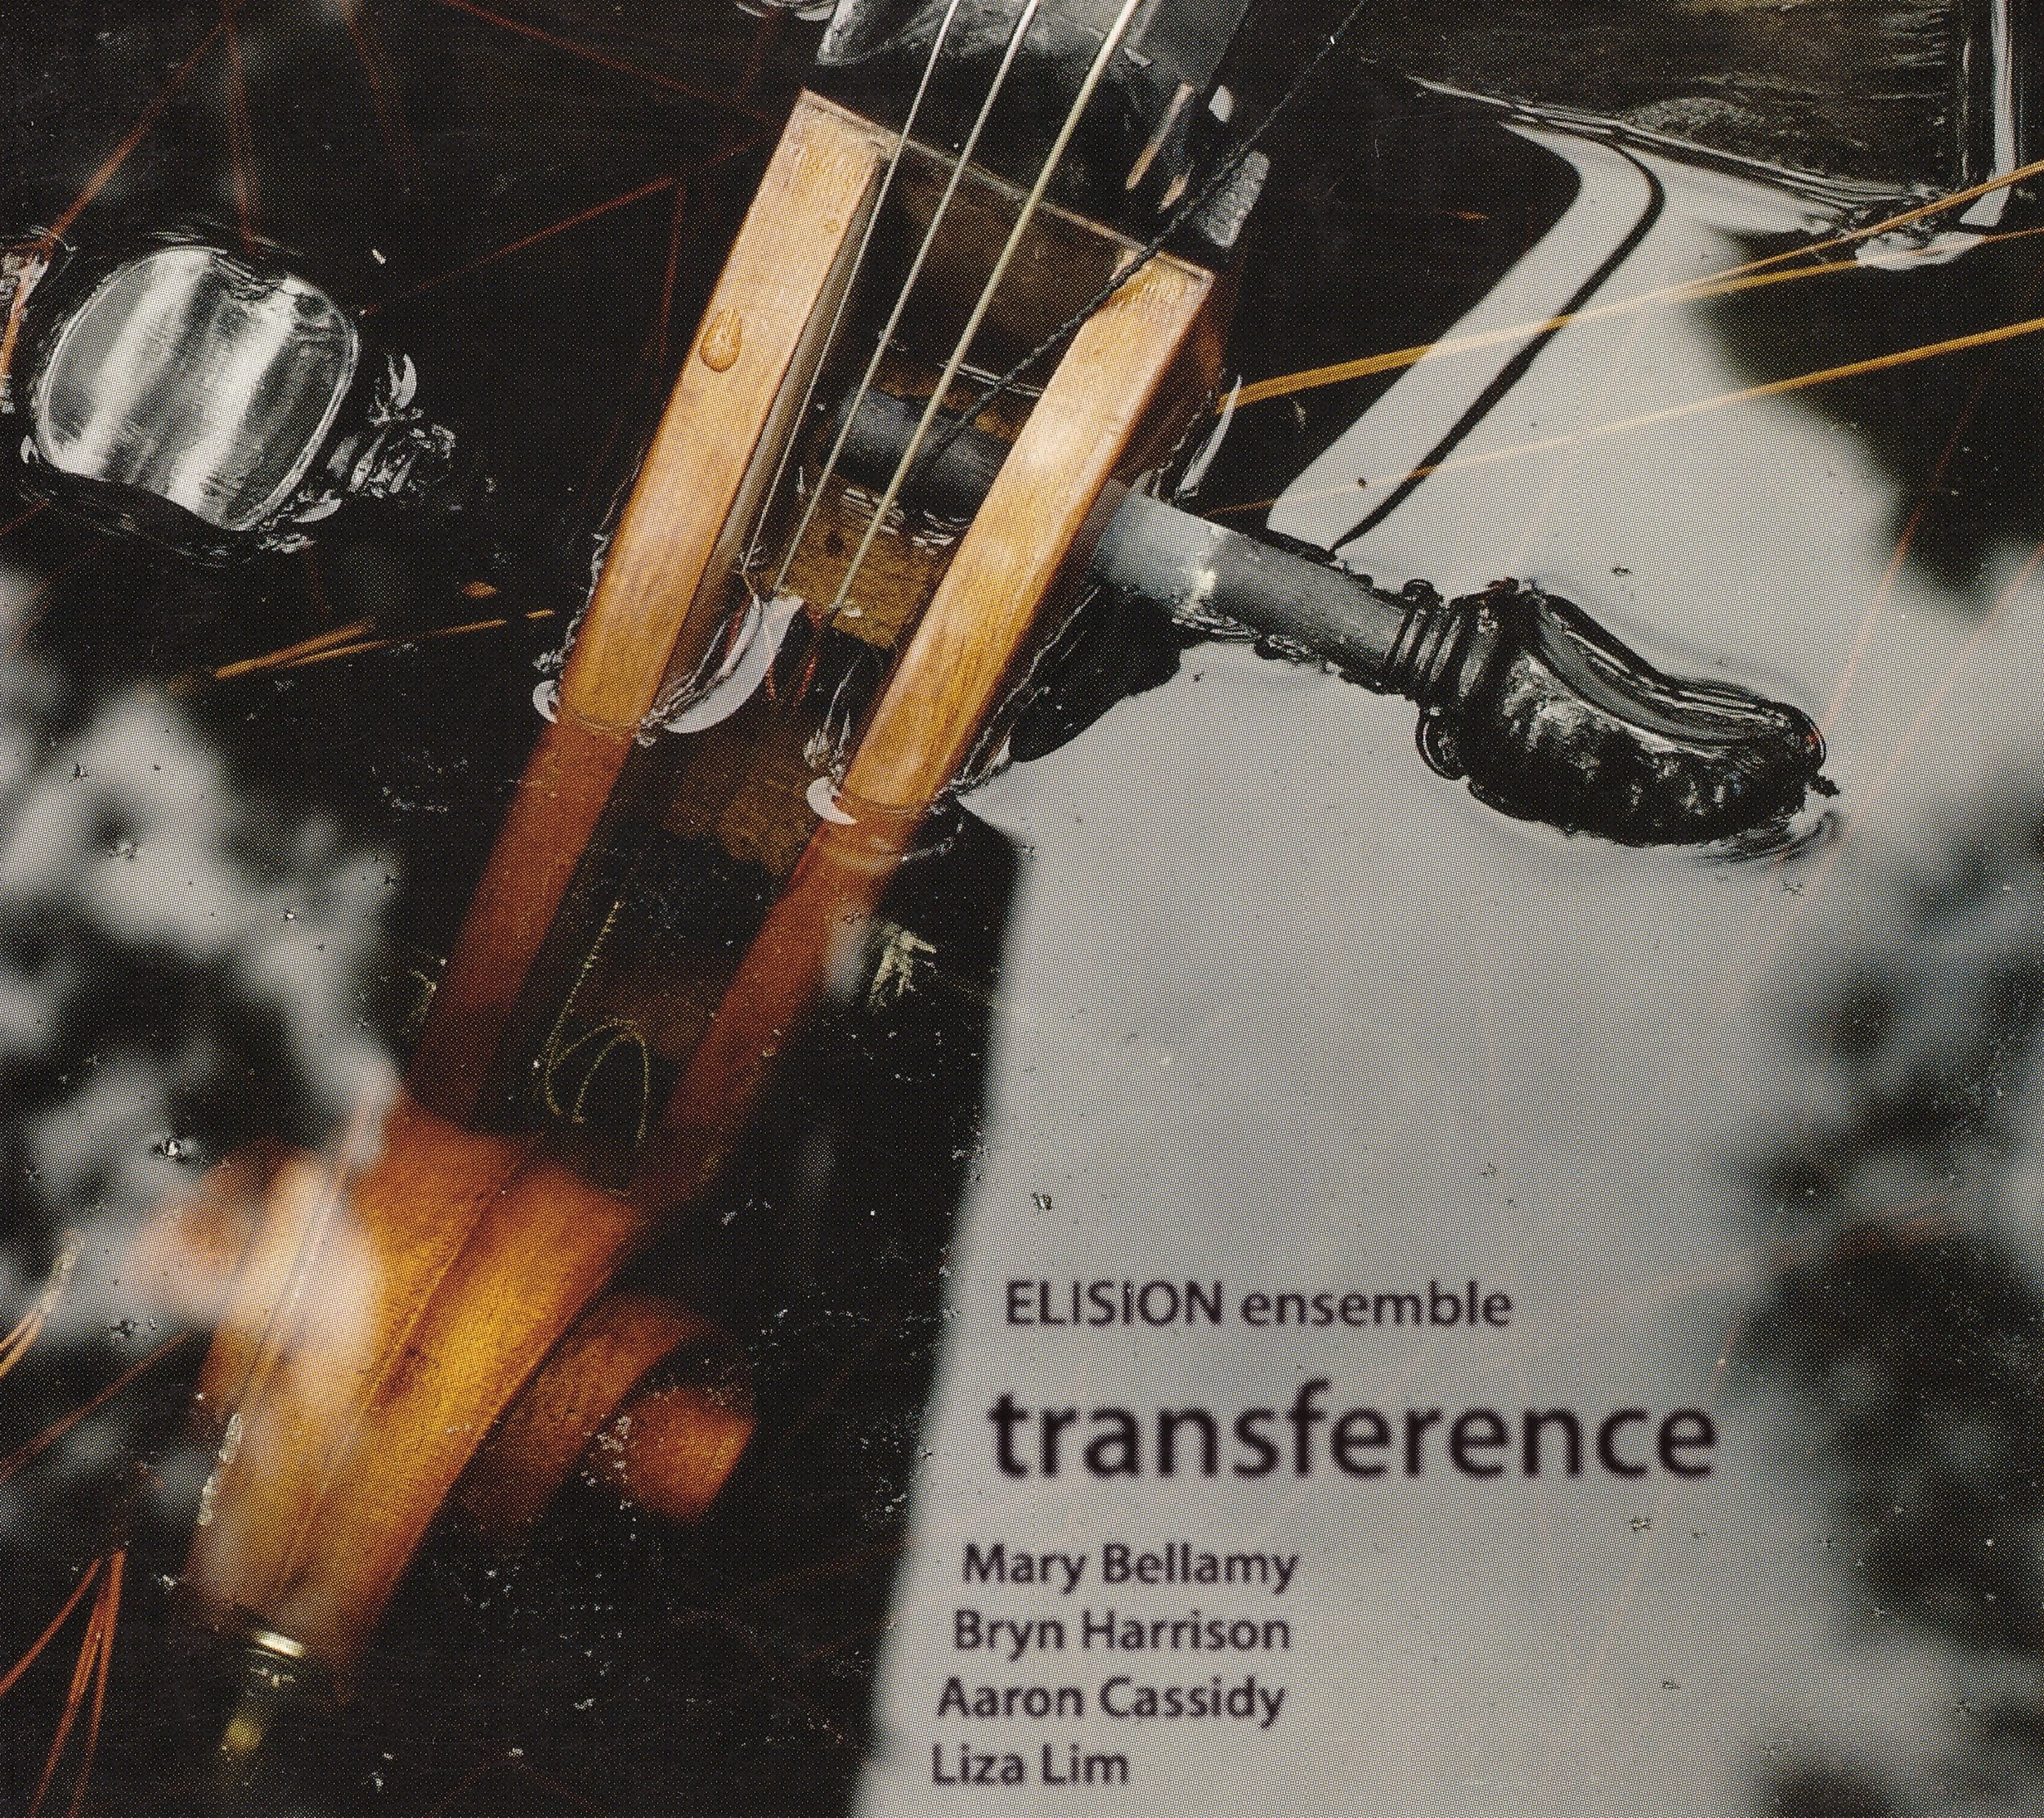 transference – ELISION Ensemble  • And the scream, Bacon's scream, is the operation through which the entire body escapes through the mouth (or, Three Studies for Figures at the Base of a Crucifixion) – Aaron  Cassidy ° • Songs Found in Dream – Liza  Lim ° • surface forms (repeating) – Bryn  Harrison °    ORDER